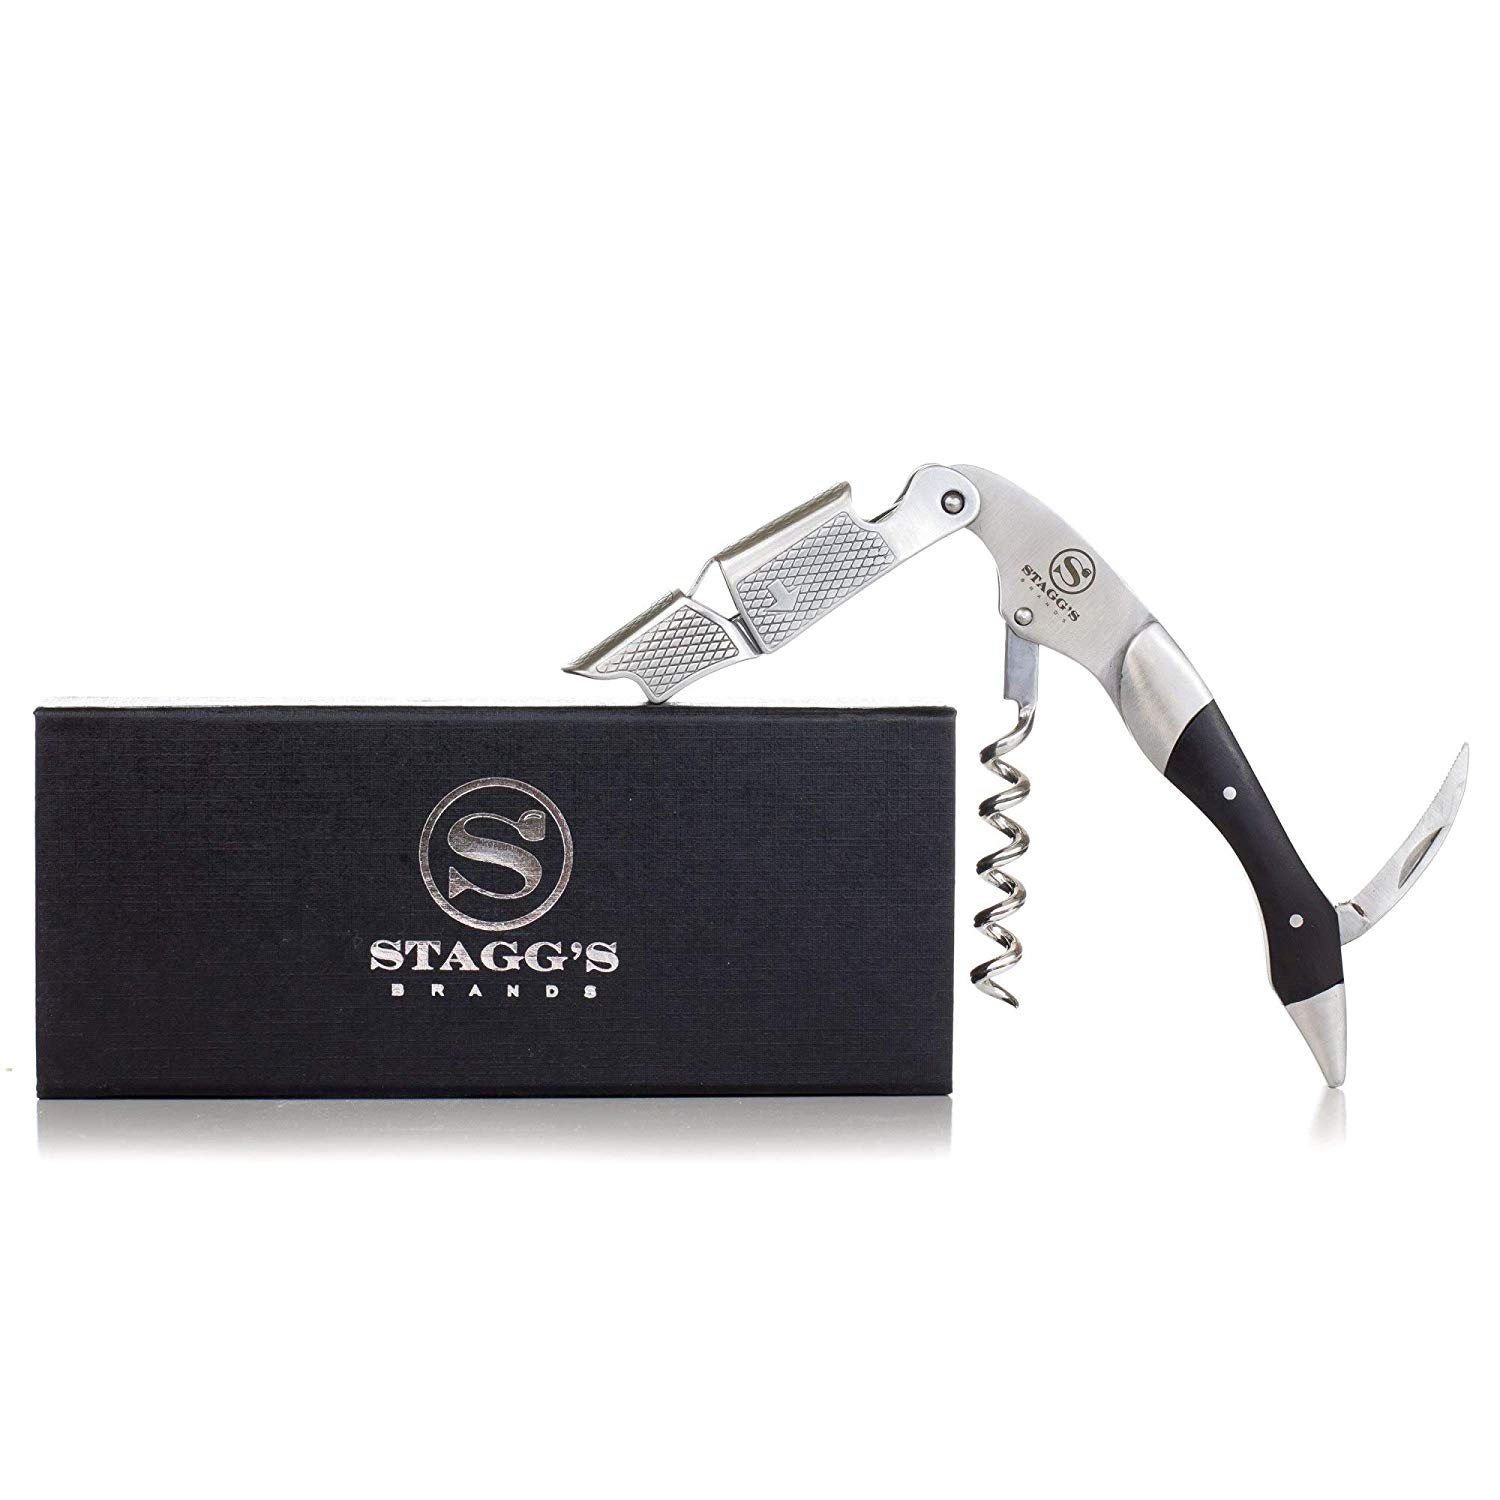 Premium Double Hinged Waiter's Wine Corkscrew by Stagg's Brands- Stainless Steel Wine Key with Wood Inlay- Perfect Wine Opener for Waiters, Sommeliers and Bartenders (Black Wood)